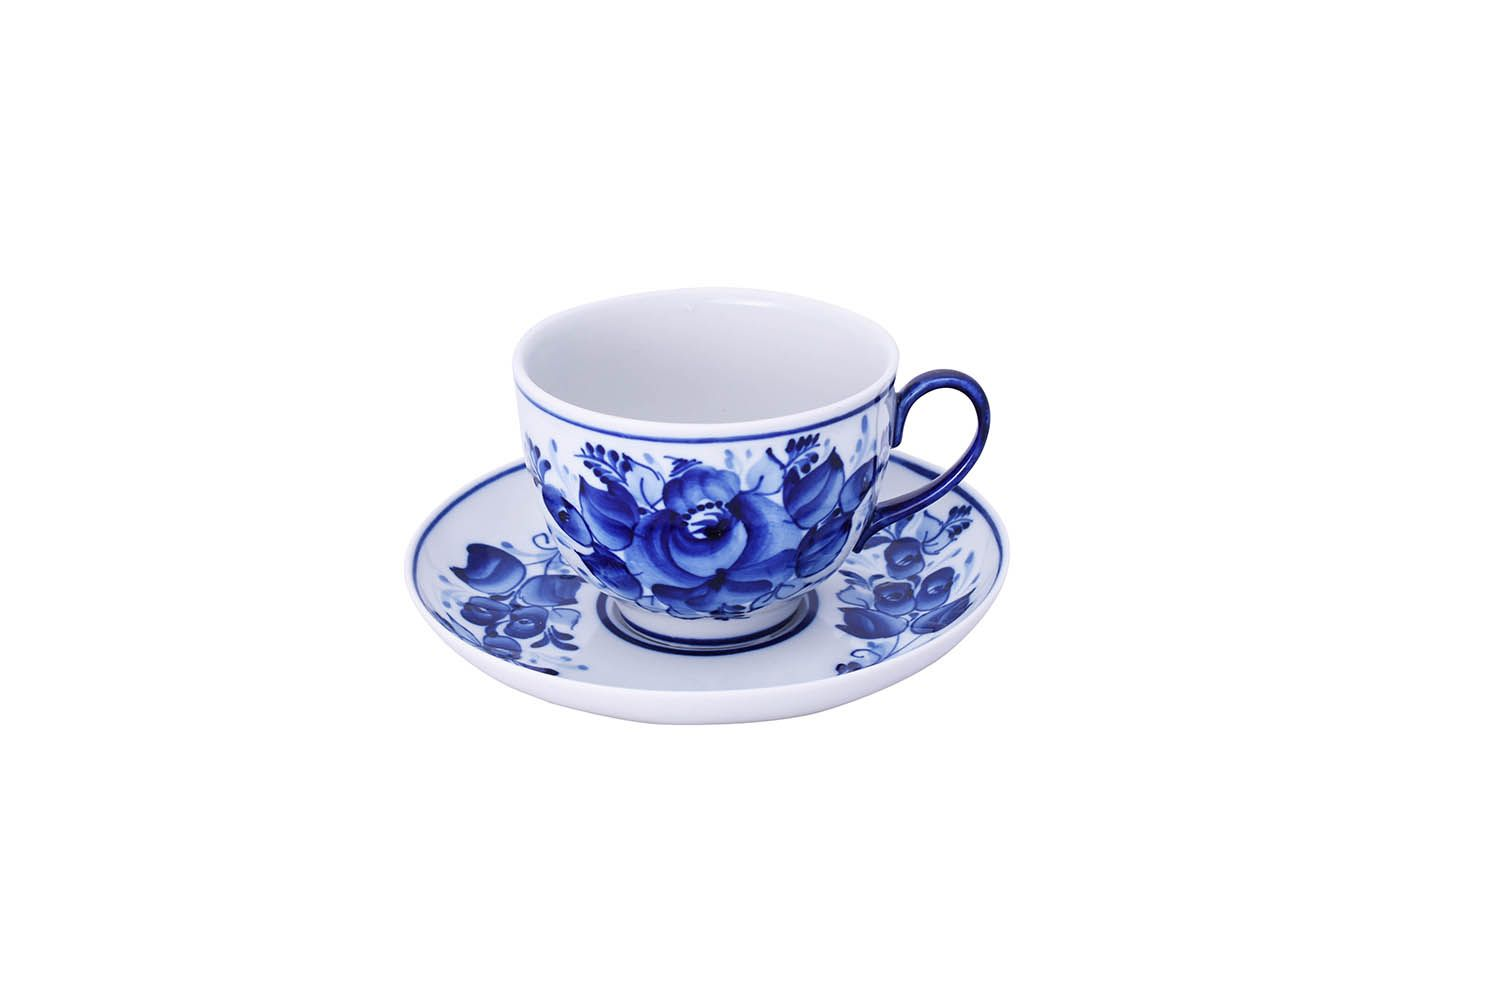 Dulevo porcelain / Tea cup and saucer set, 12 pcs., 275 ml Pomegranate Flowers